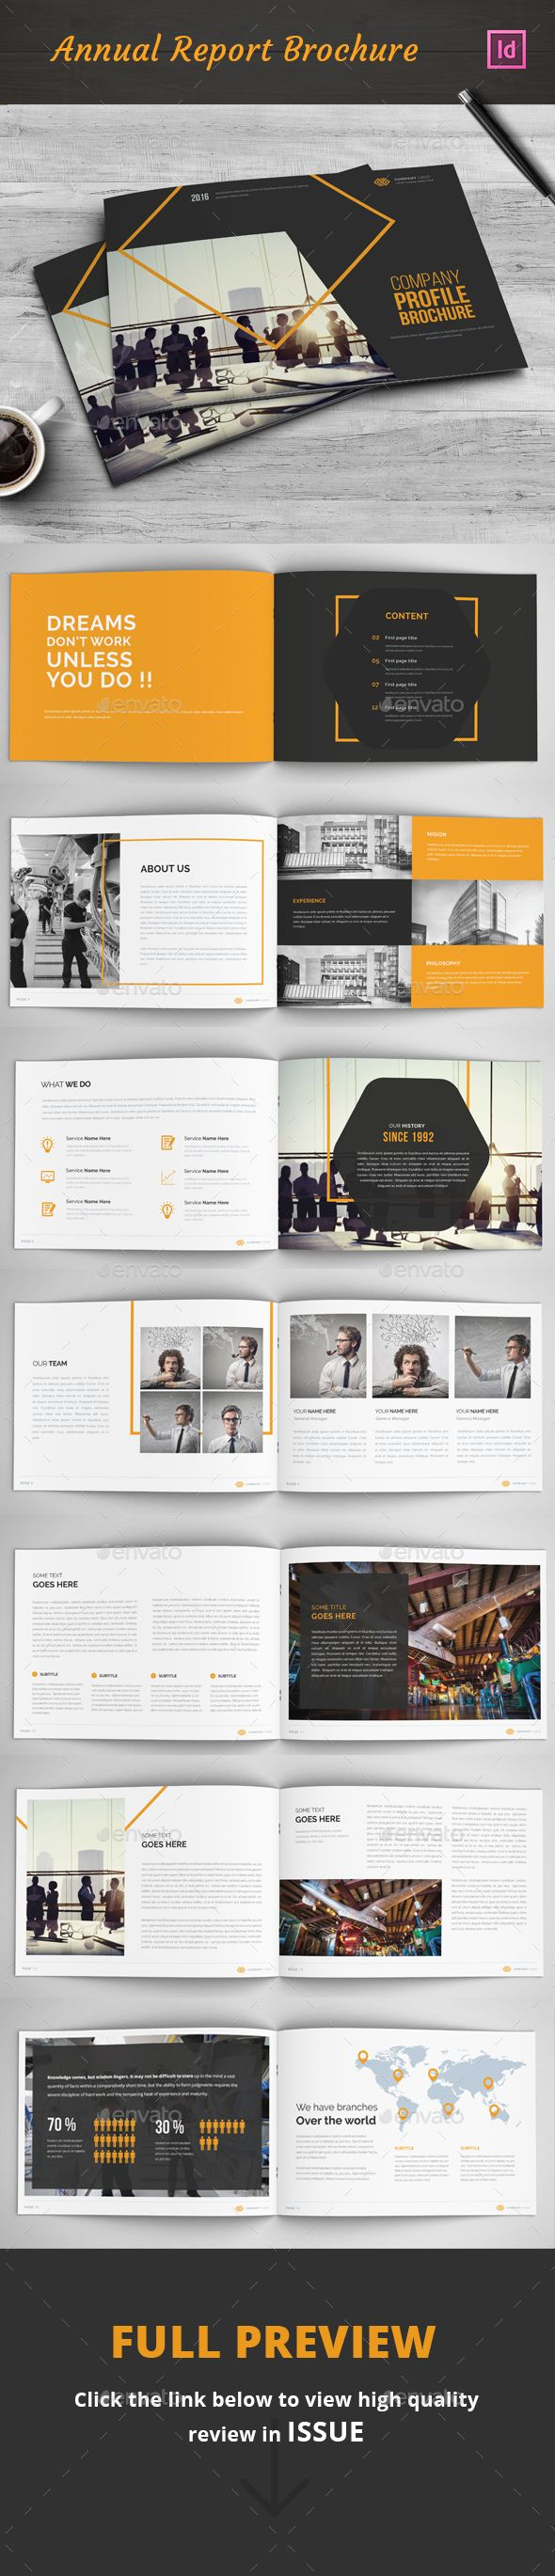 Company Profile Brochure - Catalogs Brochures                                                                                                                                                                                 More